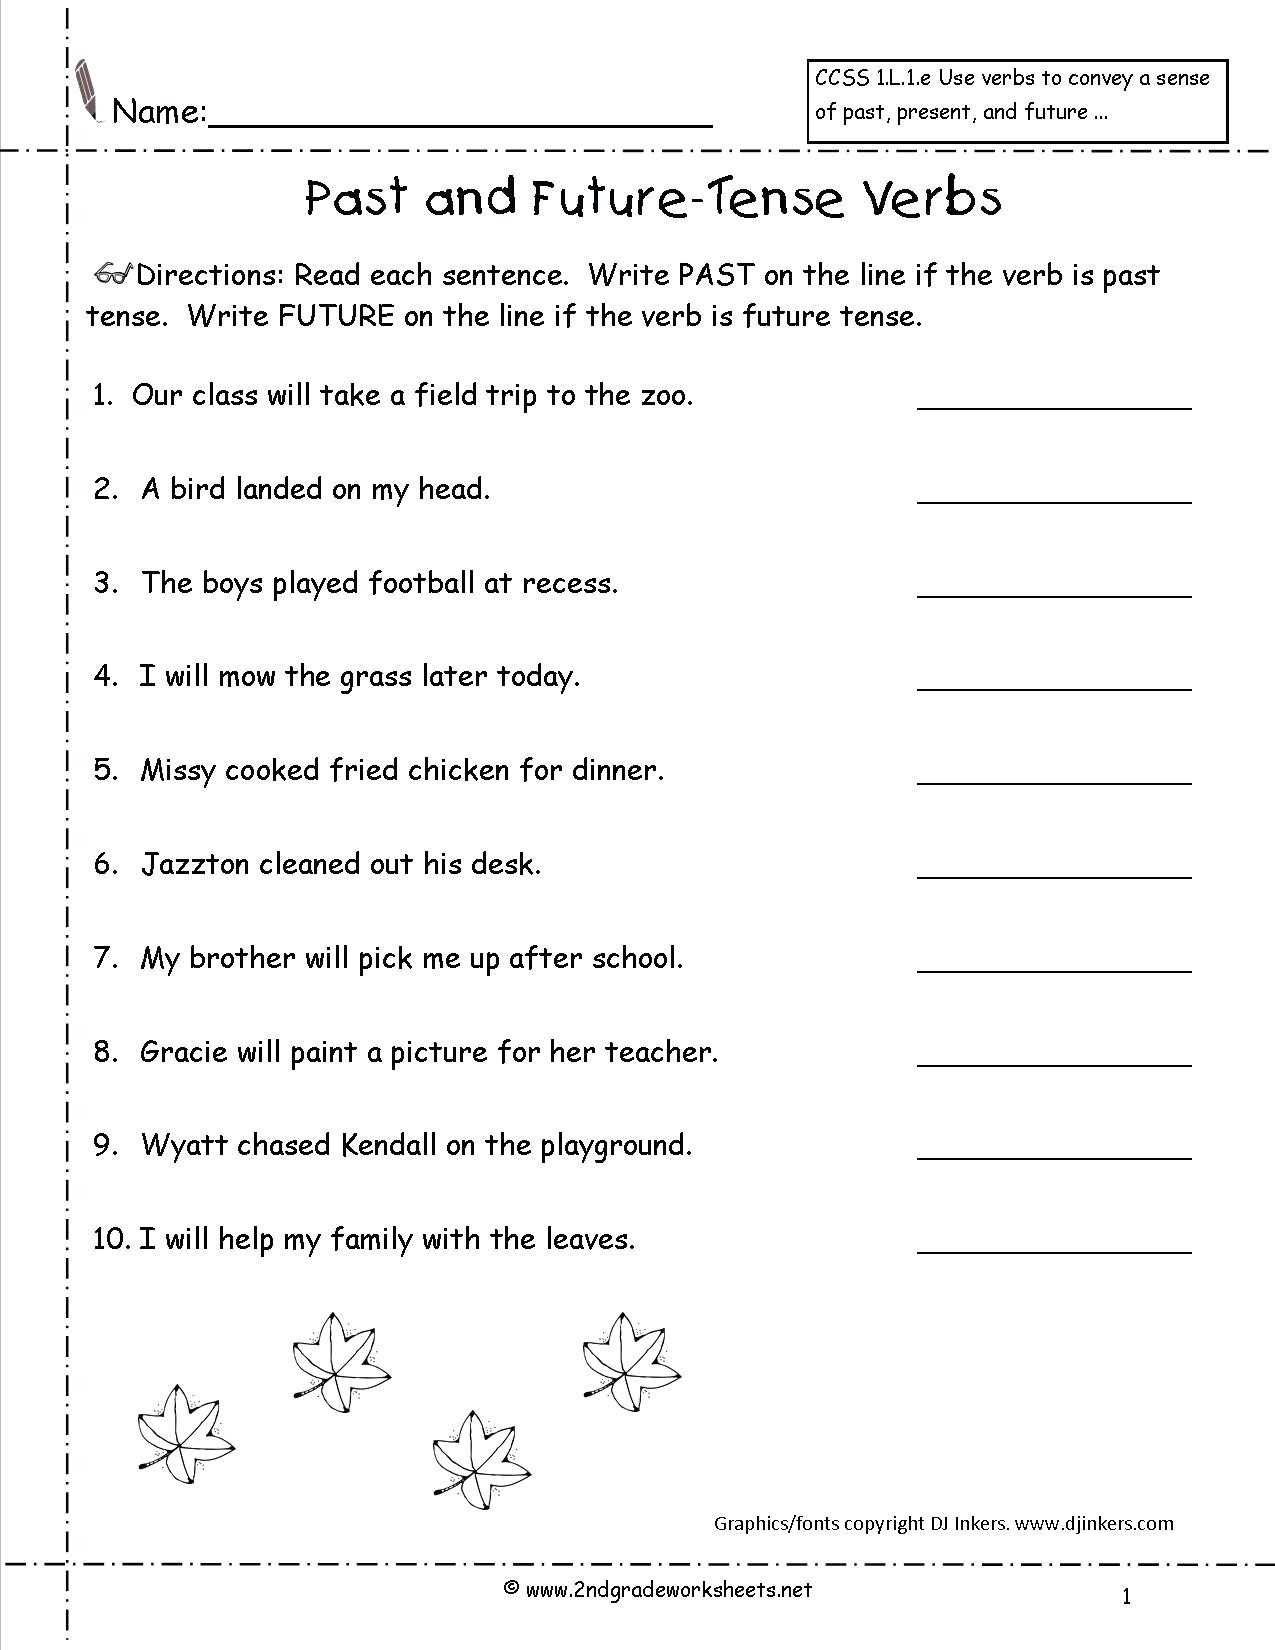 Standard Notation Worksheet Along with Noun Verb Worksheet Image Collections Worksheet for Kids In English